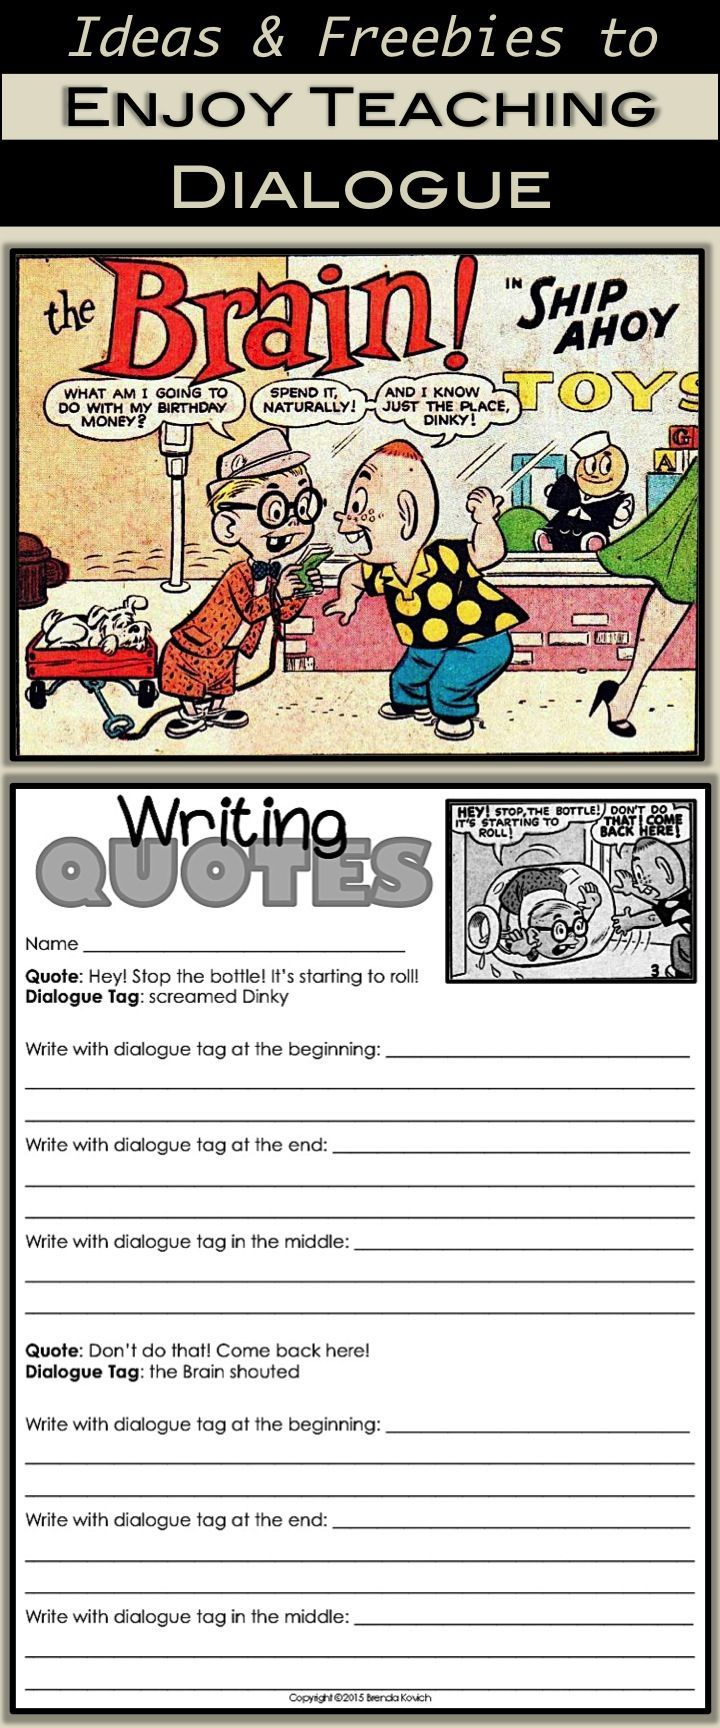 Enjoy teaching dialogue! Connect skills to narrative writing or even a set of cartoons. Grab some free printables (and some great ideas for teaching dialogue) at http://Enjoy-Teaching.com. Visit weekly for activities, ideas, and links for third, fourth, or fifth grade students.